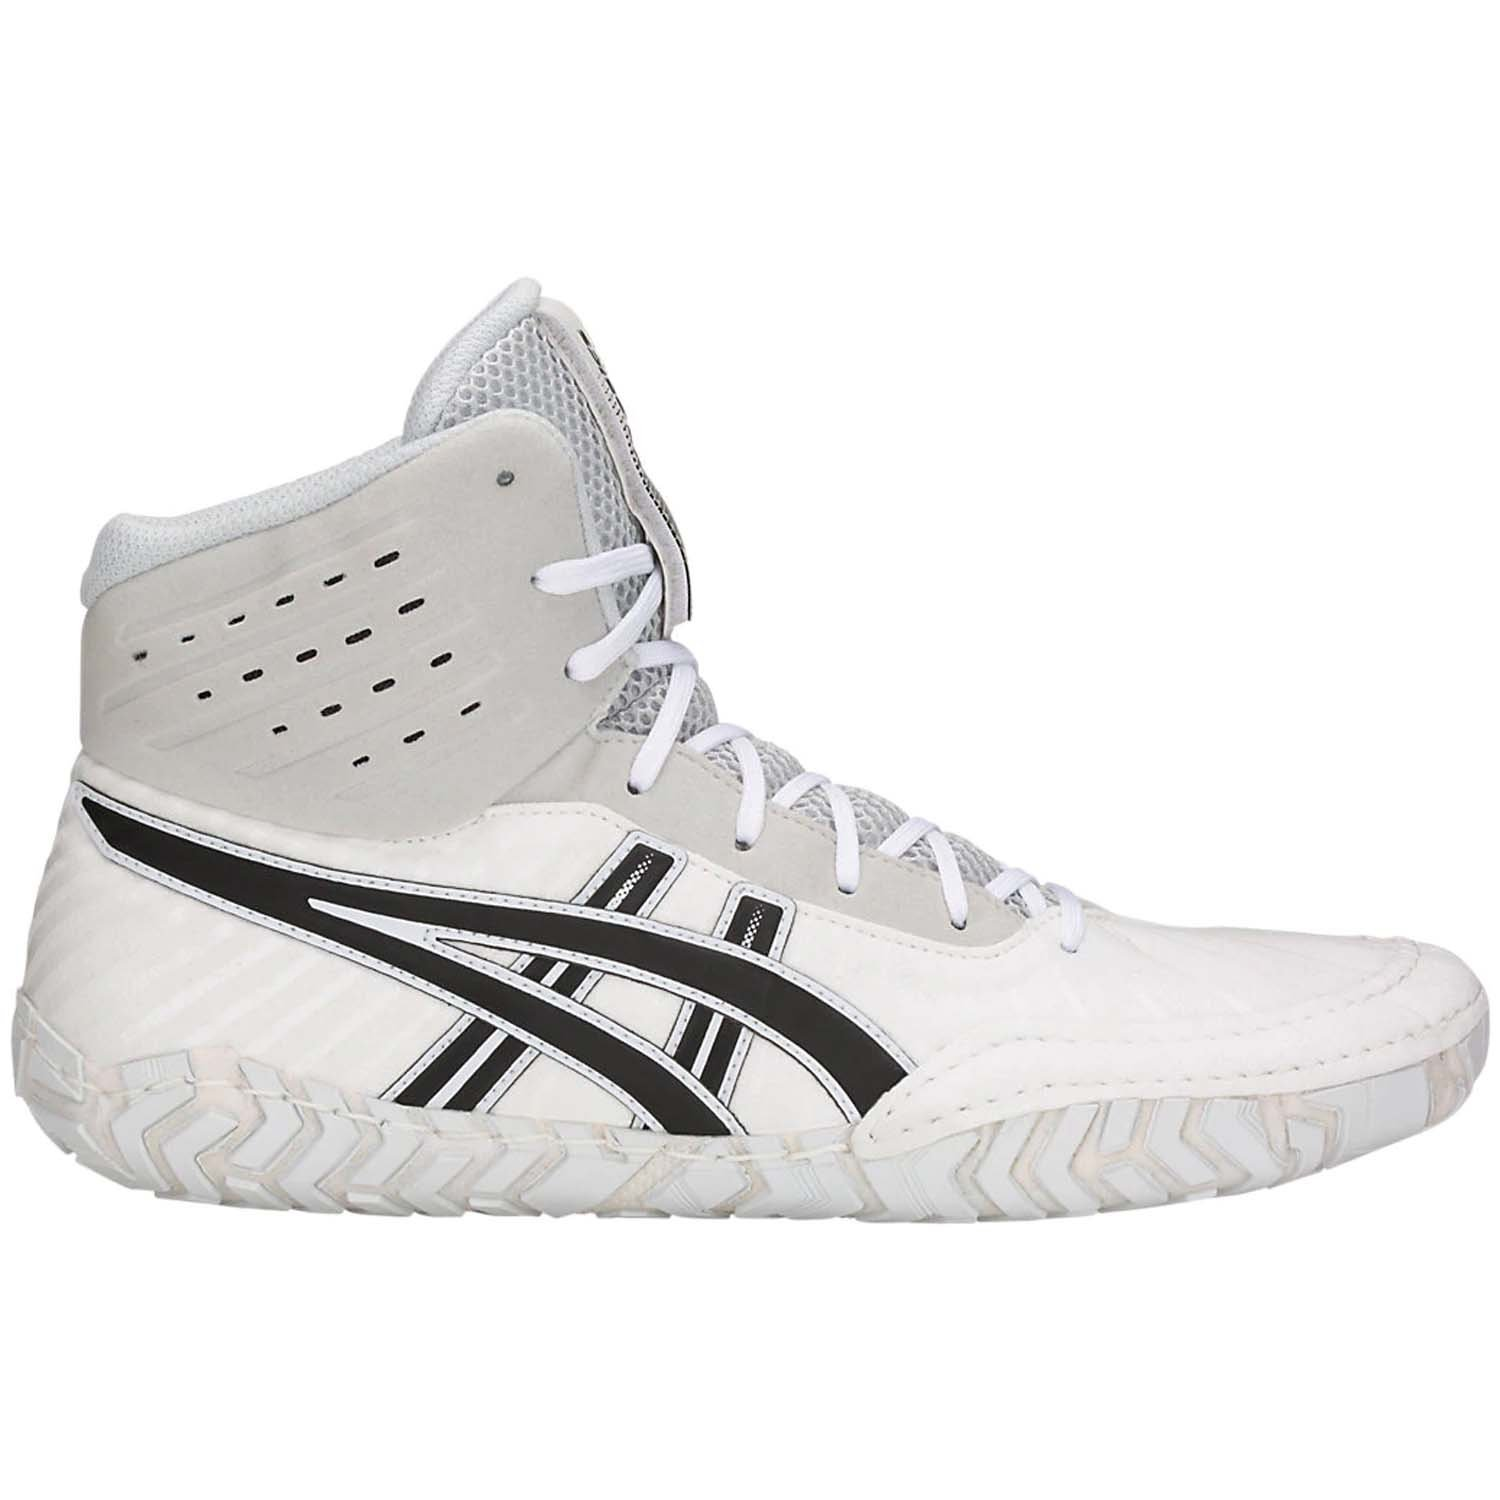 ASICS Aggressor 4 Men's Wrestling Shoes, White/Black, Size 9